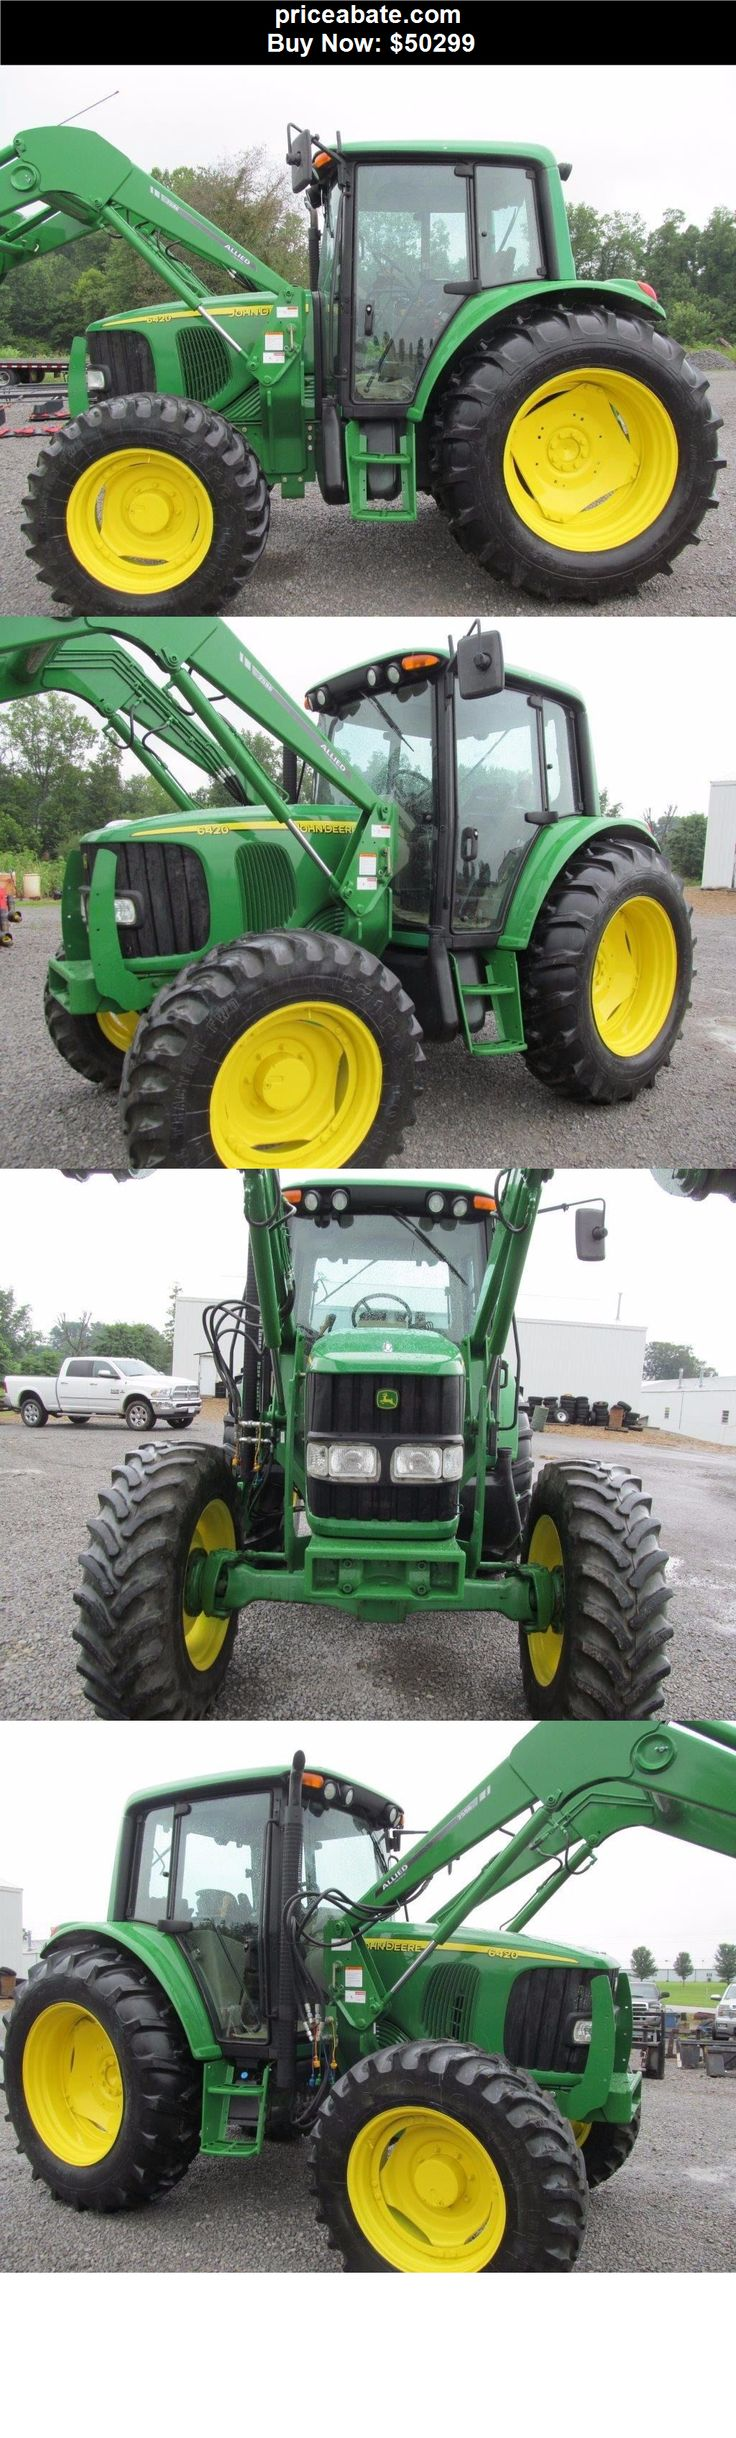 Heavy-Equipments: John Deere 6420 Diesel Tractor 4 X 4 With Cab & Corner Exhaust - BUY IT NOW ONLY $50299